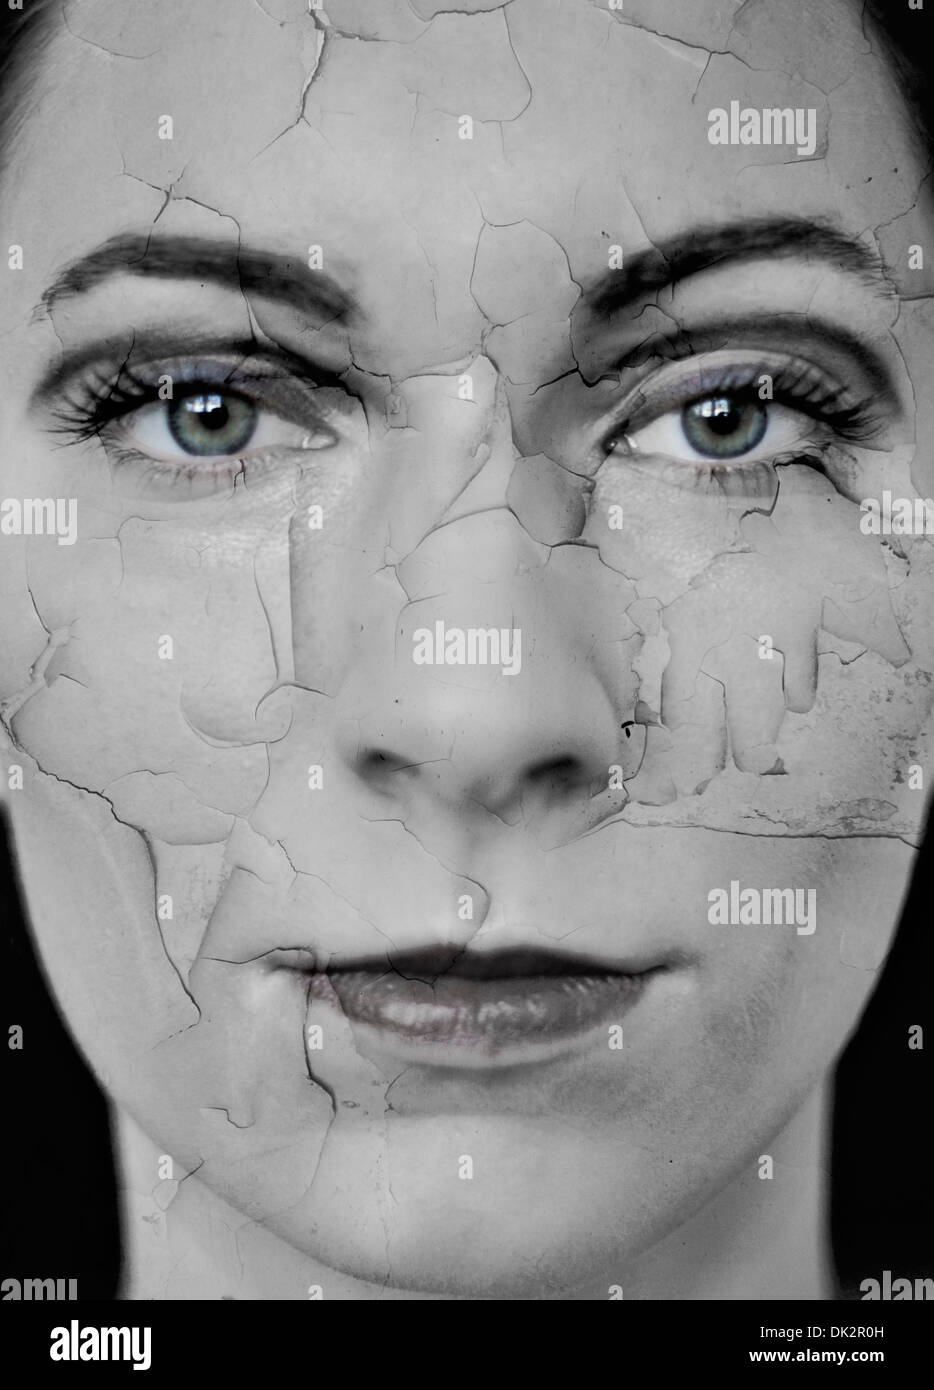 Woman with dry cracked skin, digital composite - Stock Image